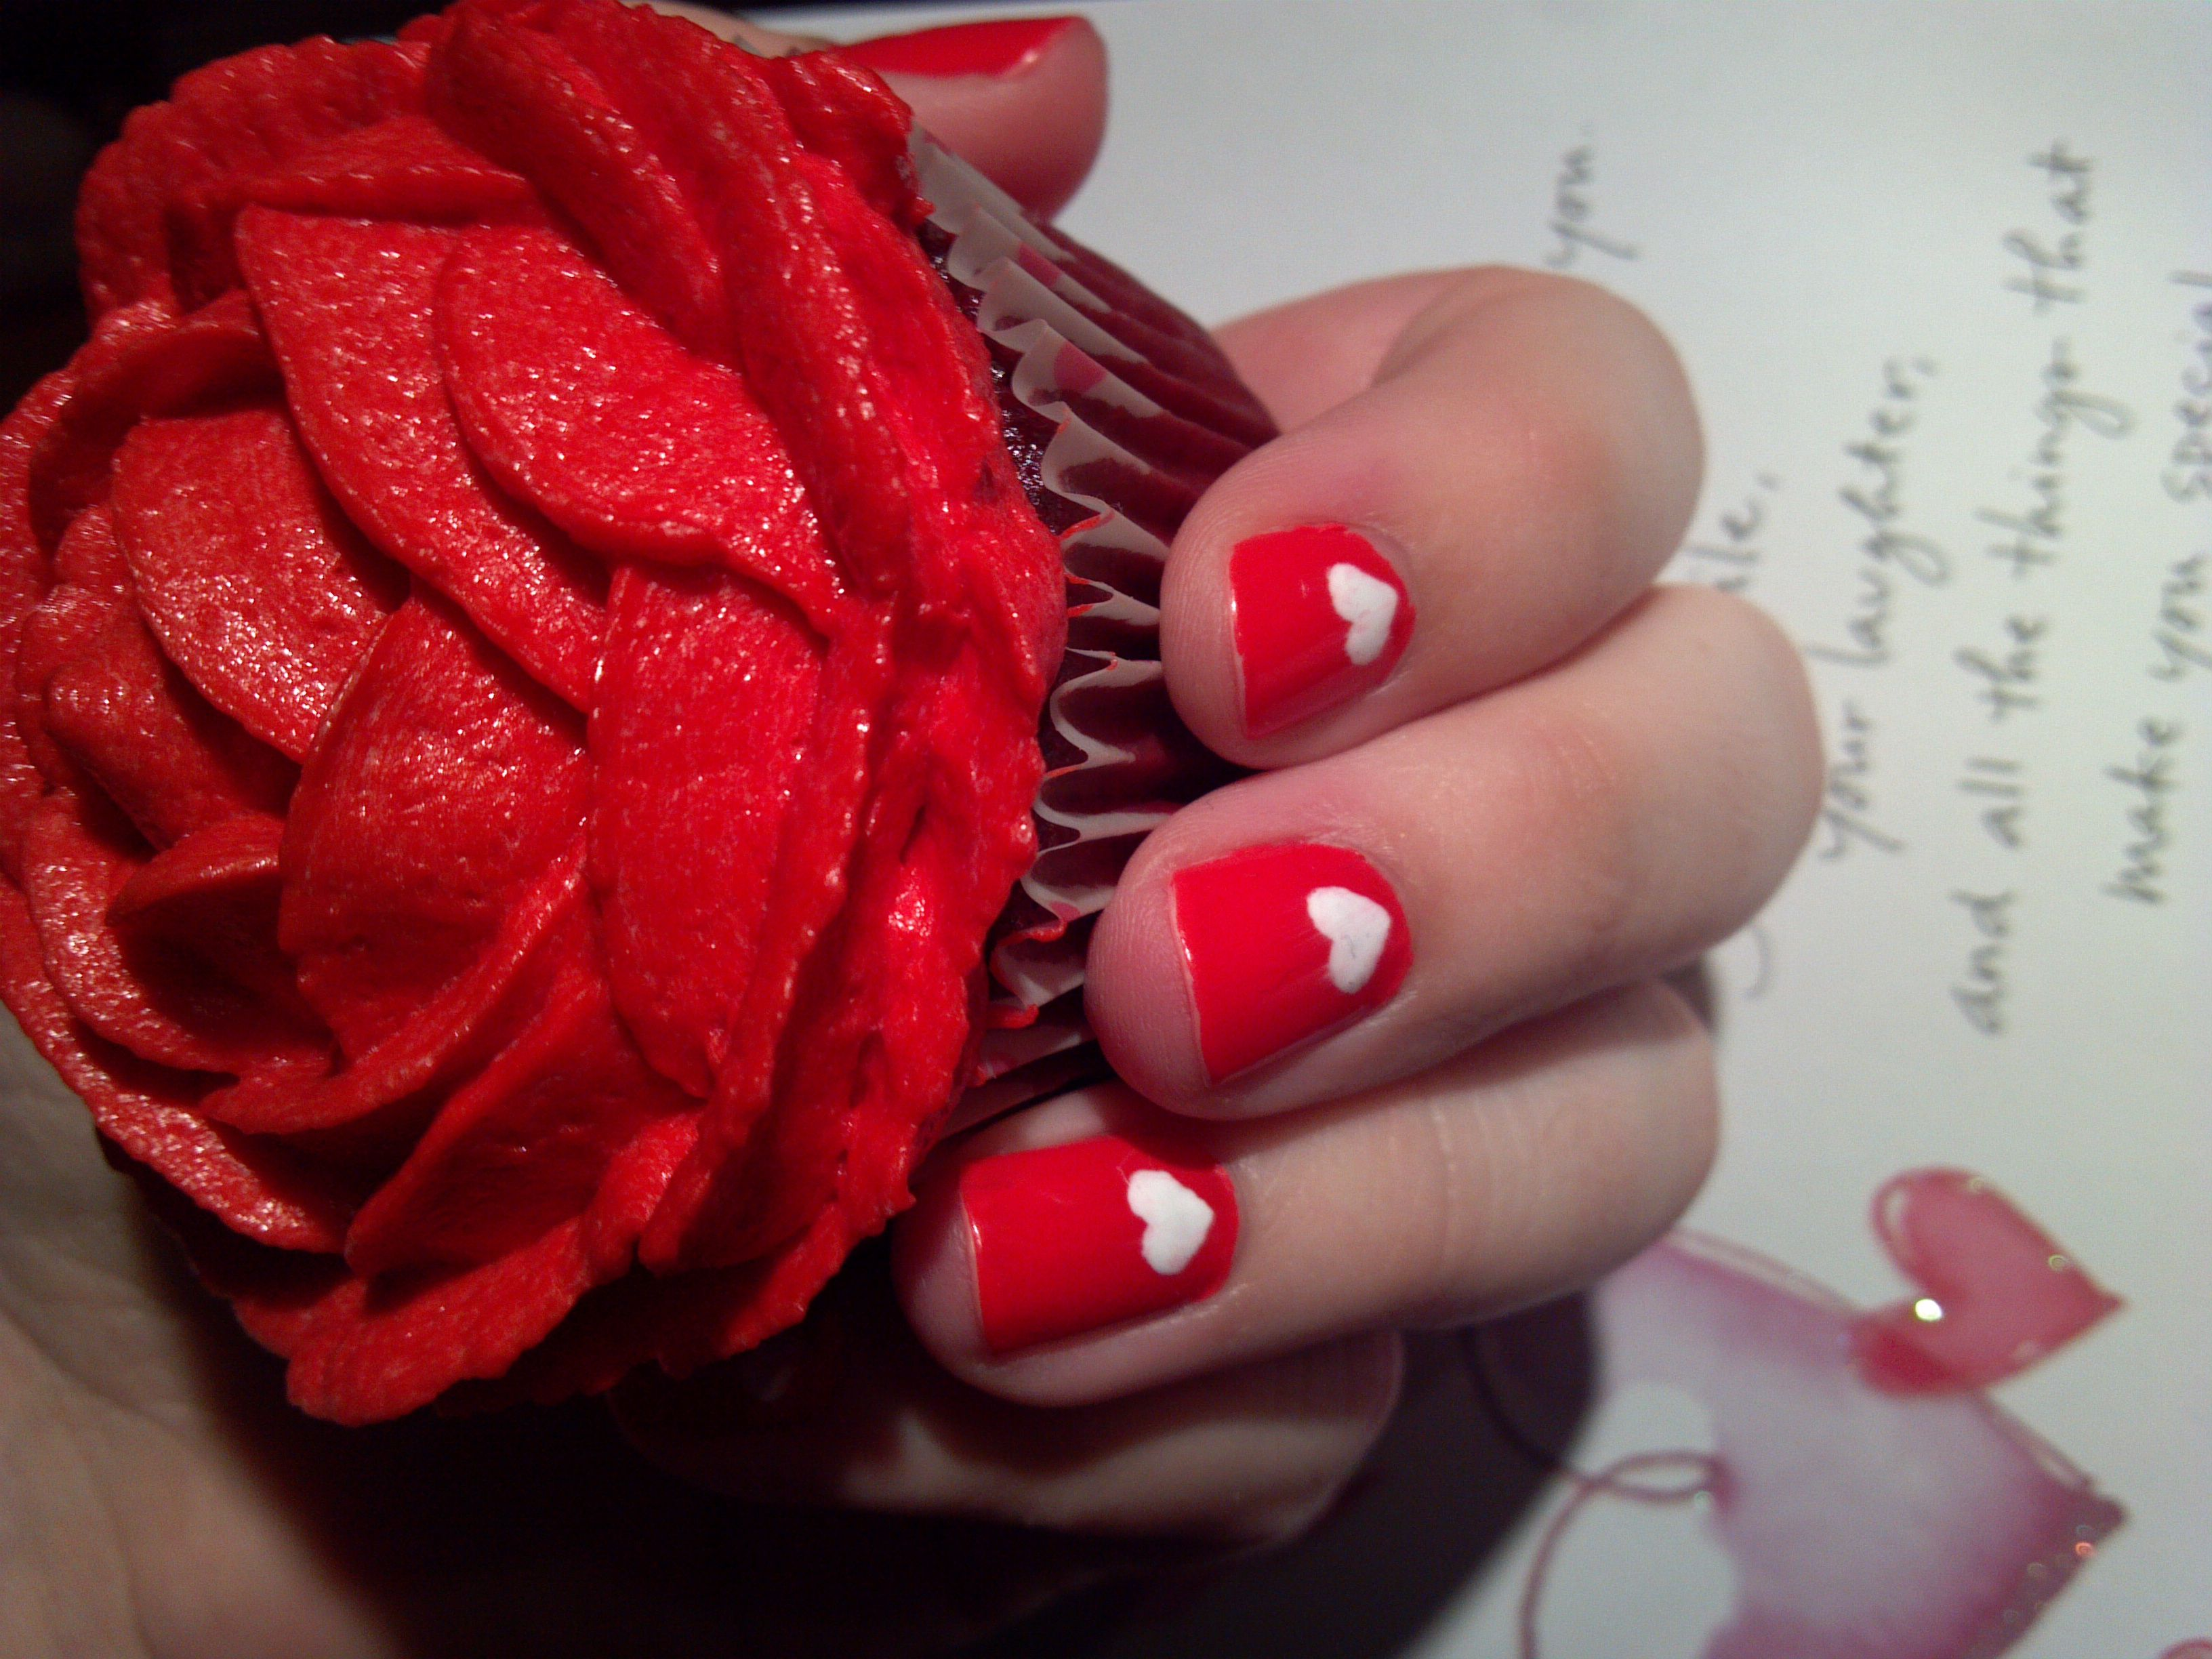 So proud of this pic!  Made that cupcake and did my nails myself :-D